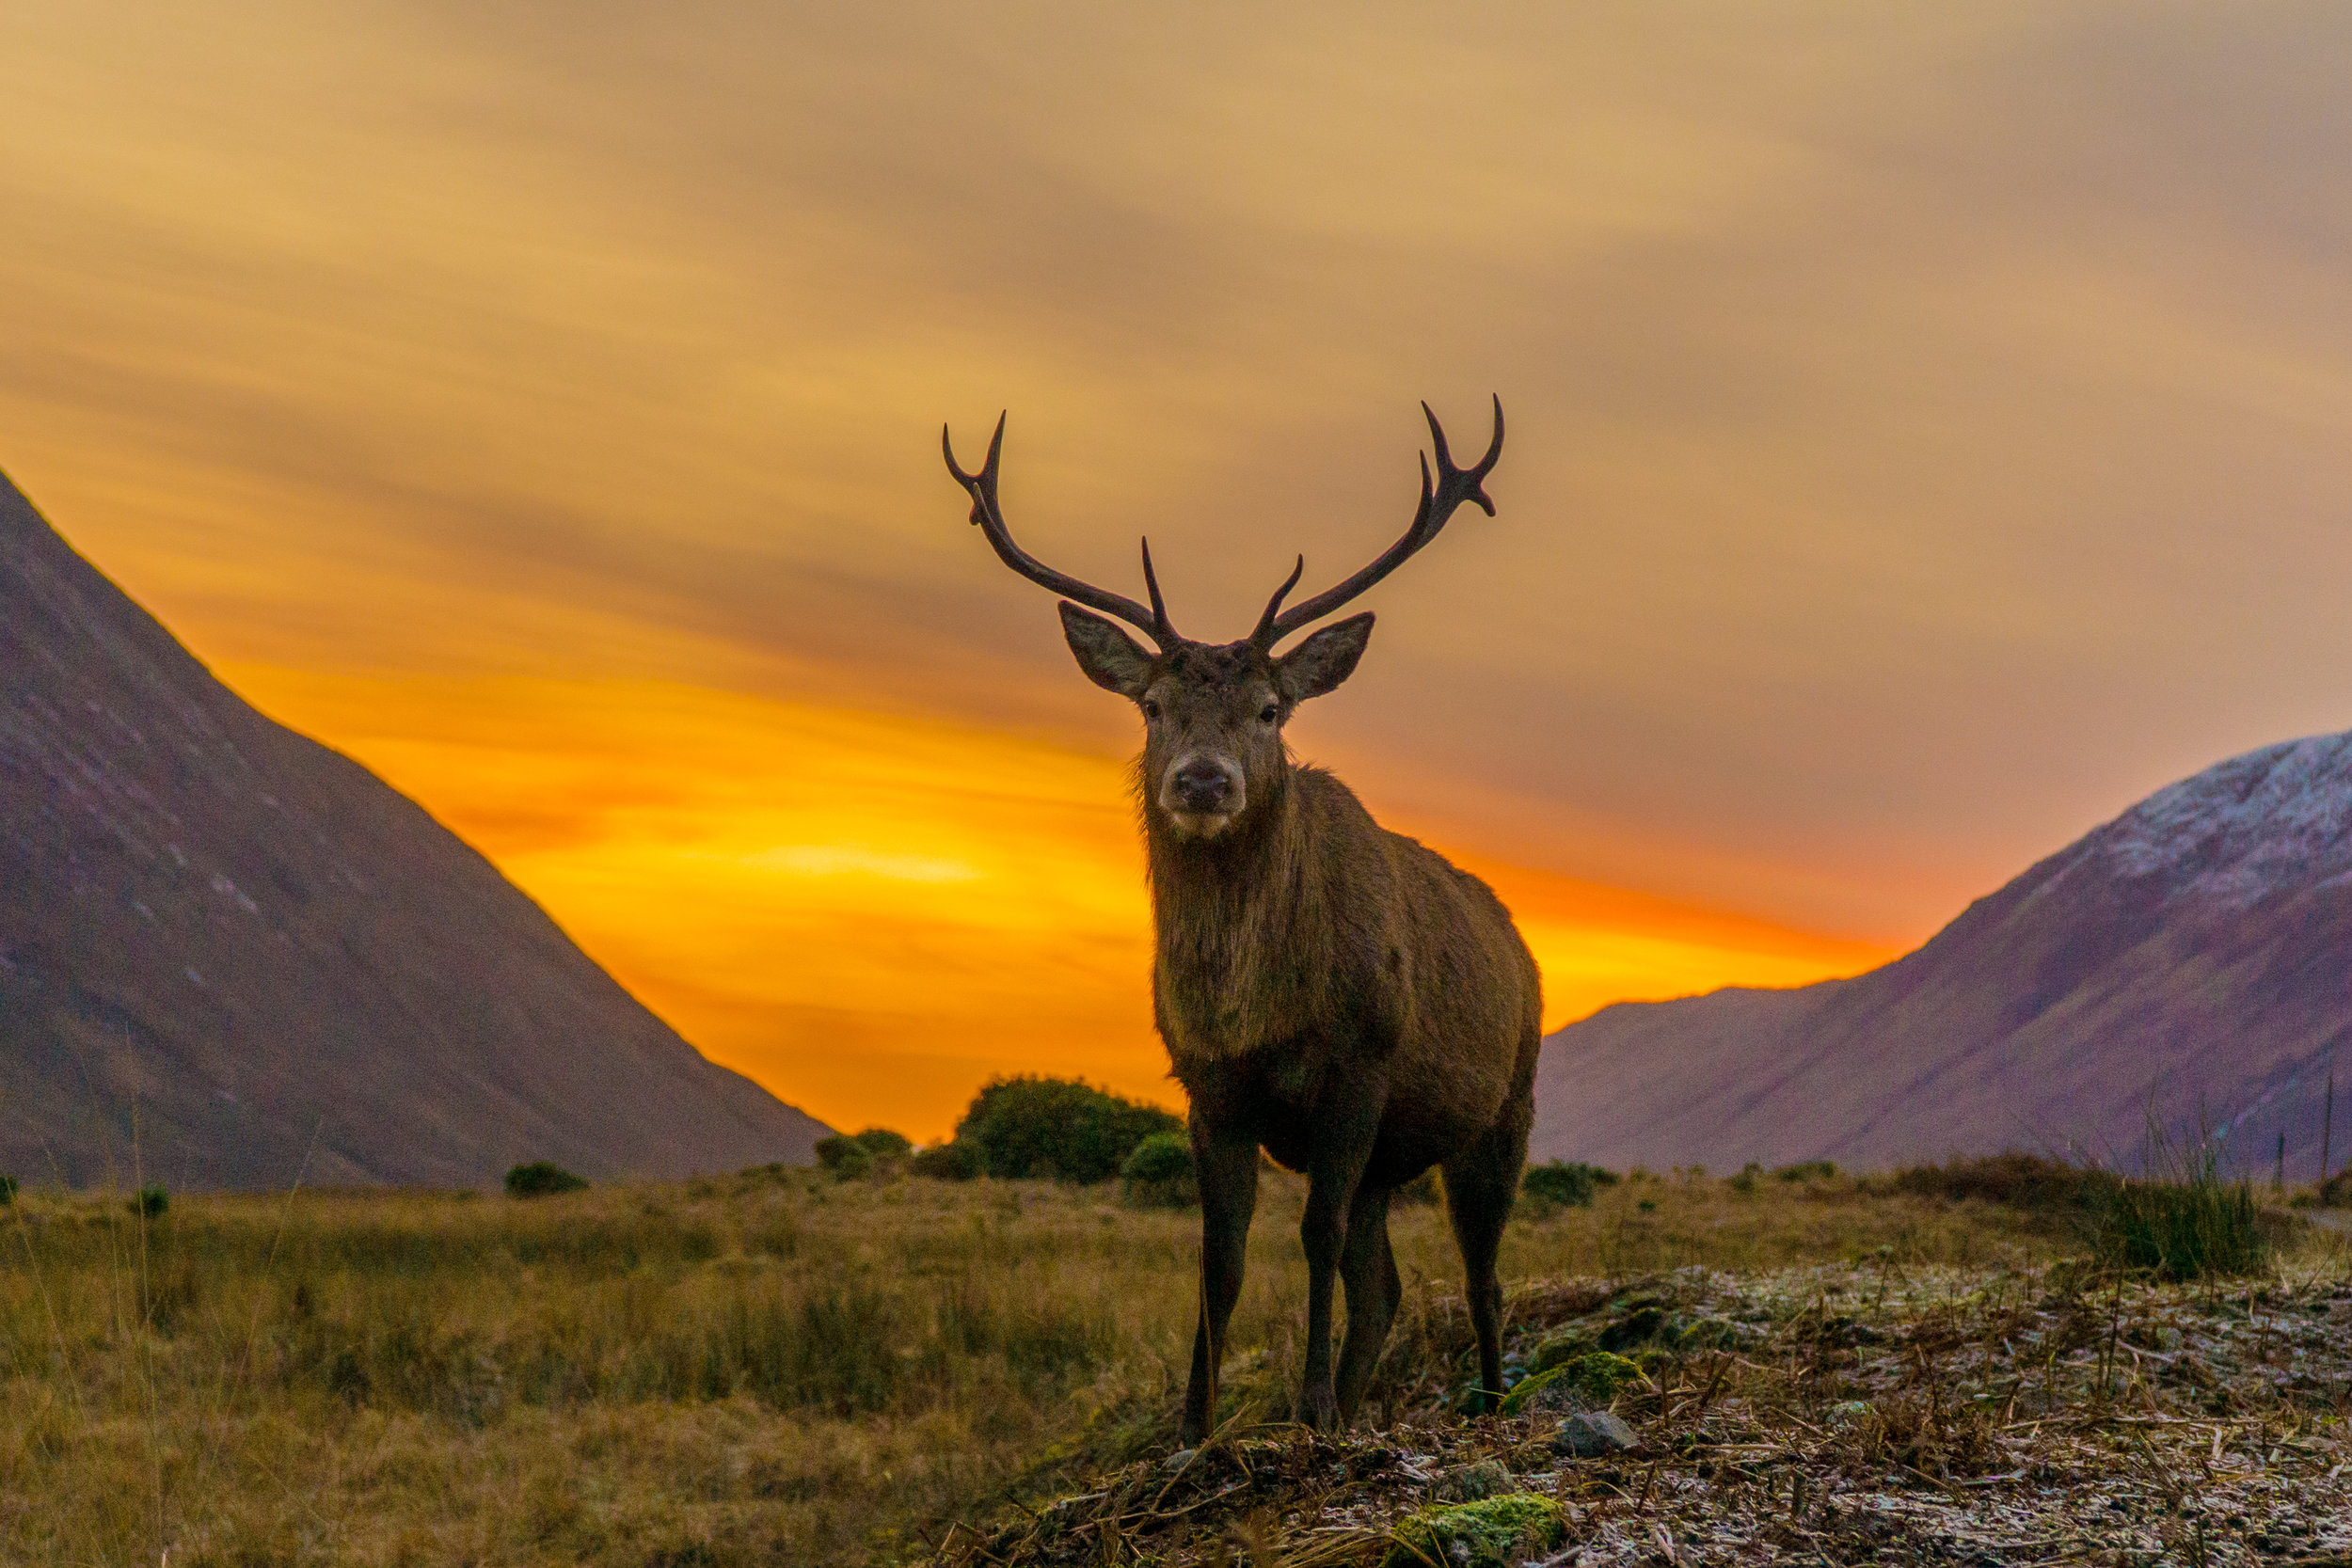 scottish stag at sunset